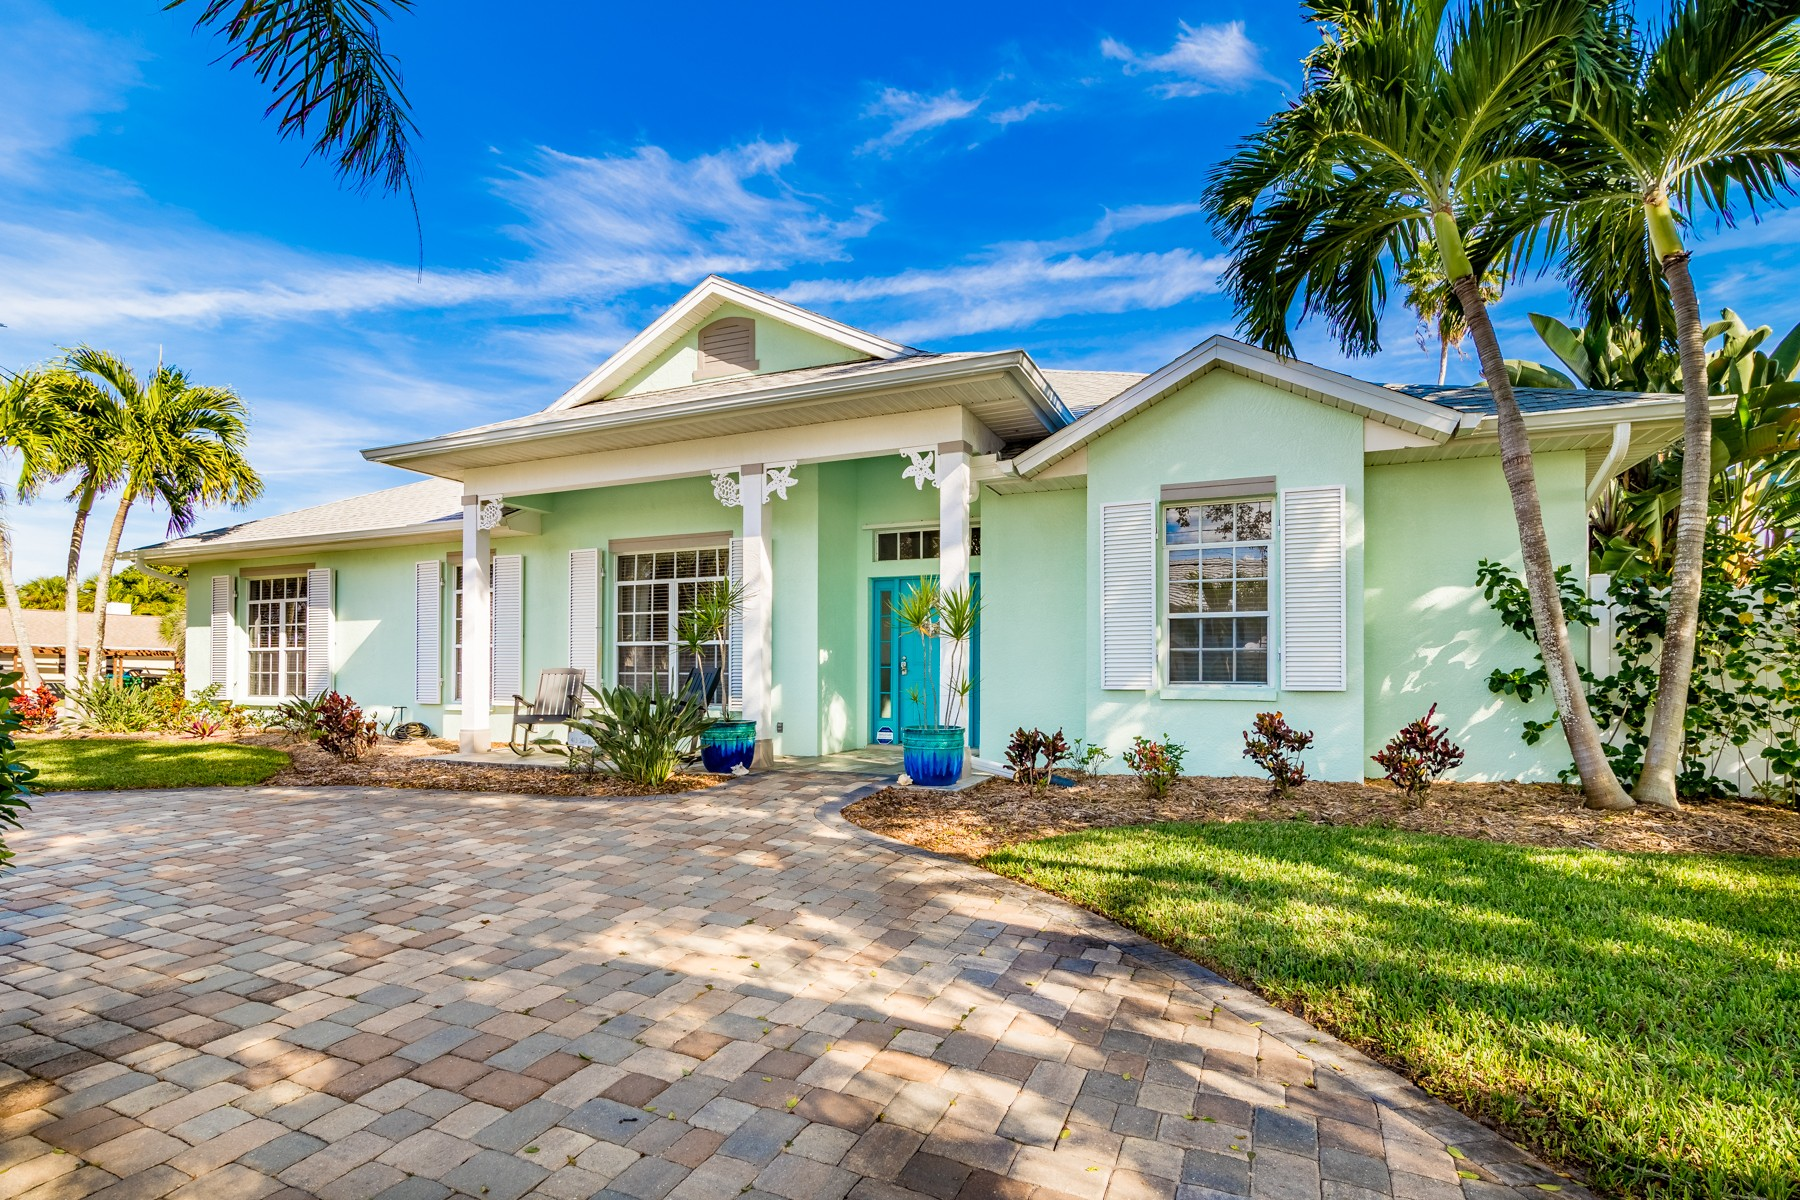 Single Family Home for Sale at Pristine, larger home of Melbourne Beach 413 Surf Road Melbourne Beach, Florida 32951 United States